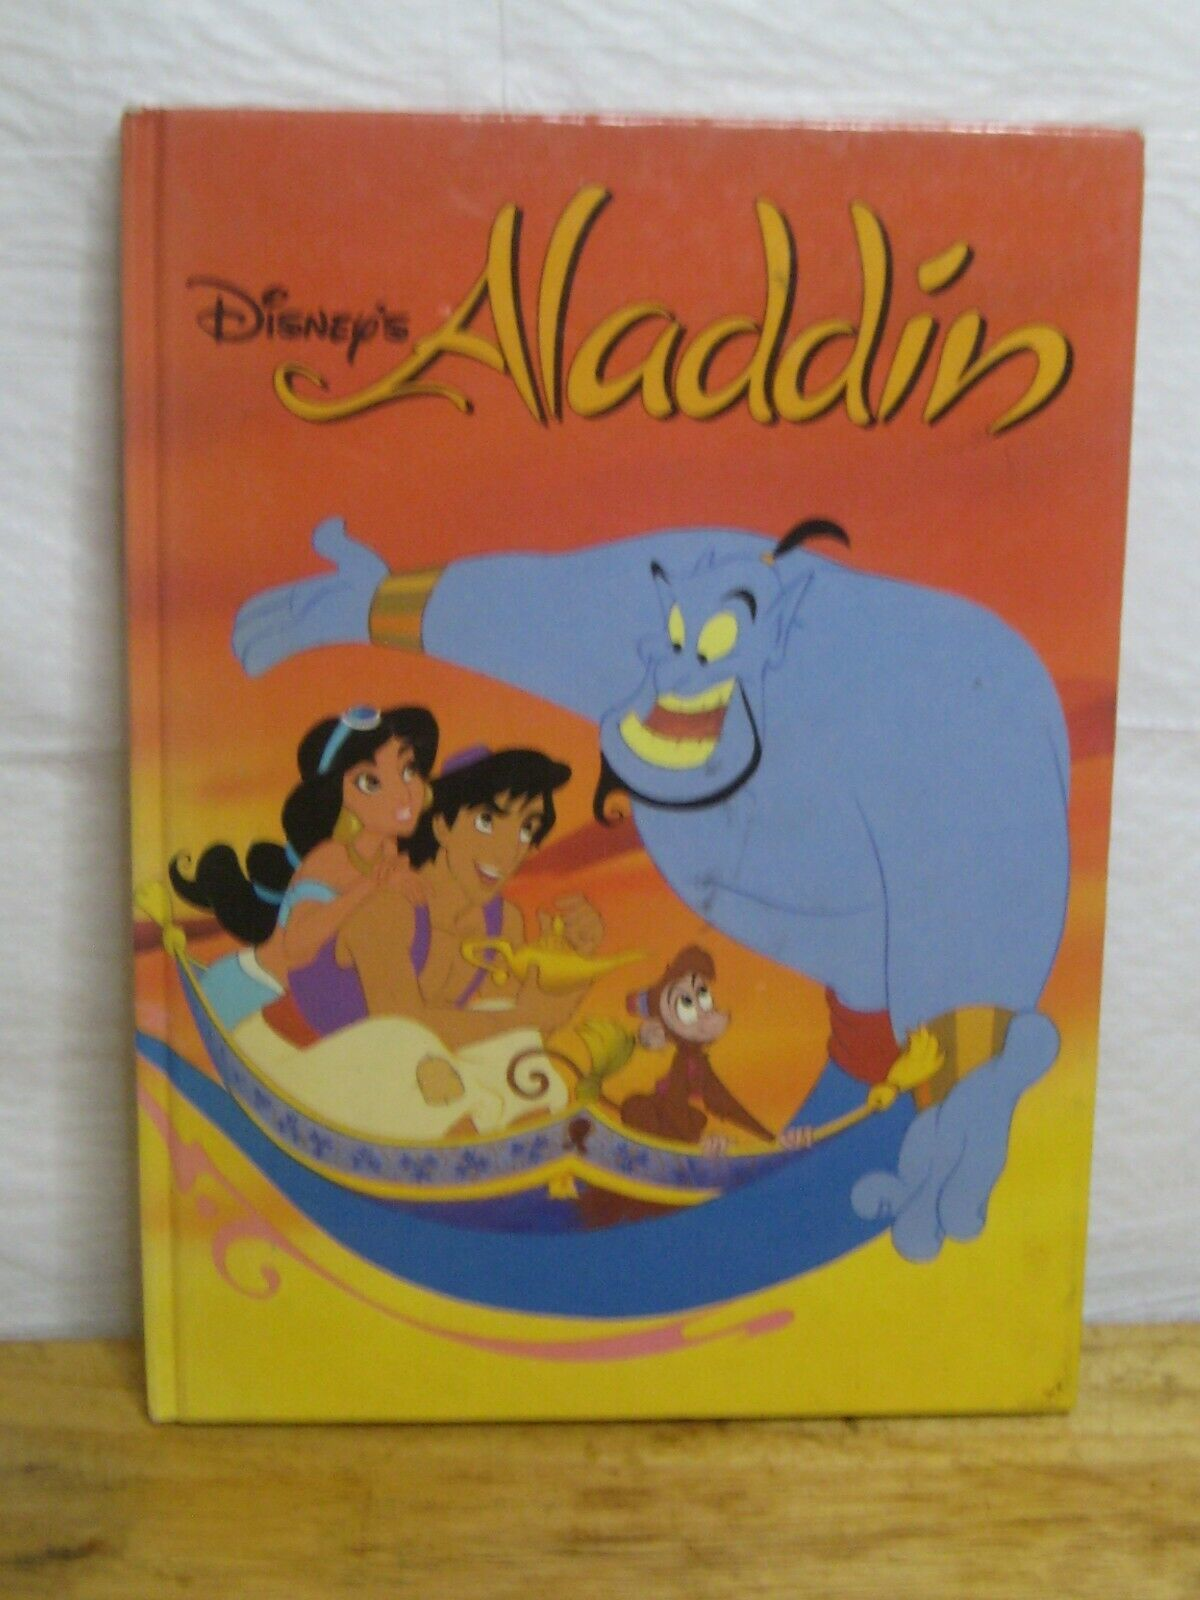 DISNEYS ALADDIN hardback book 1992 - $15.24